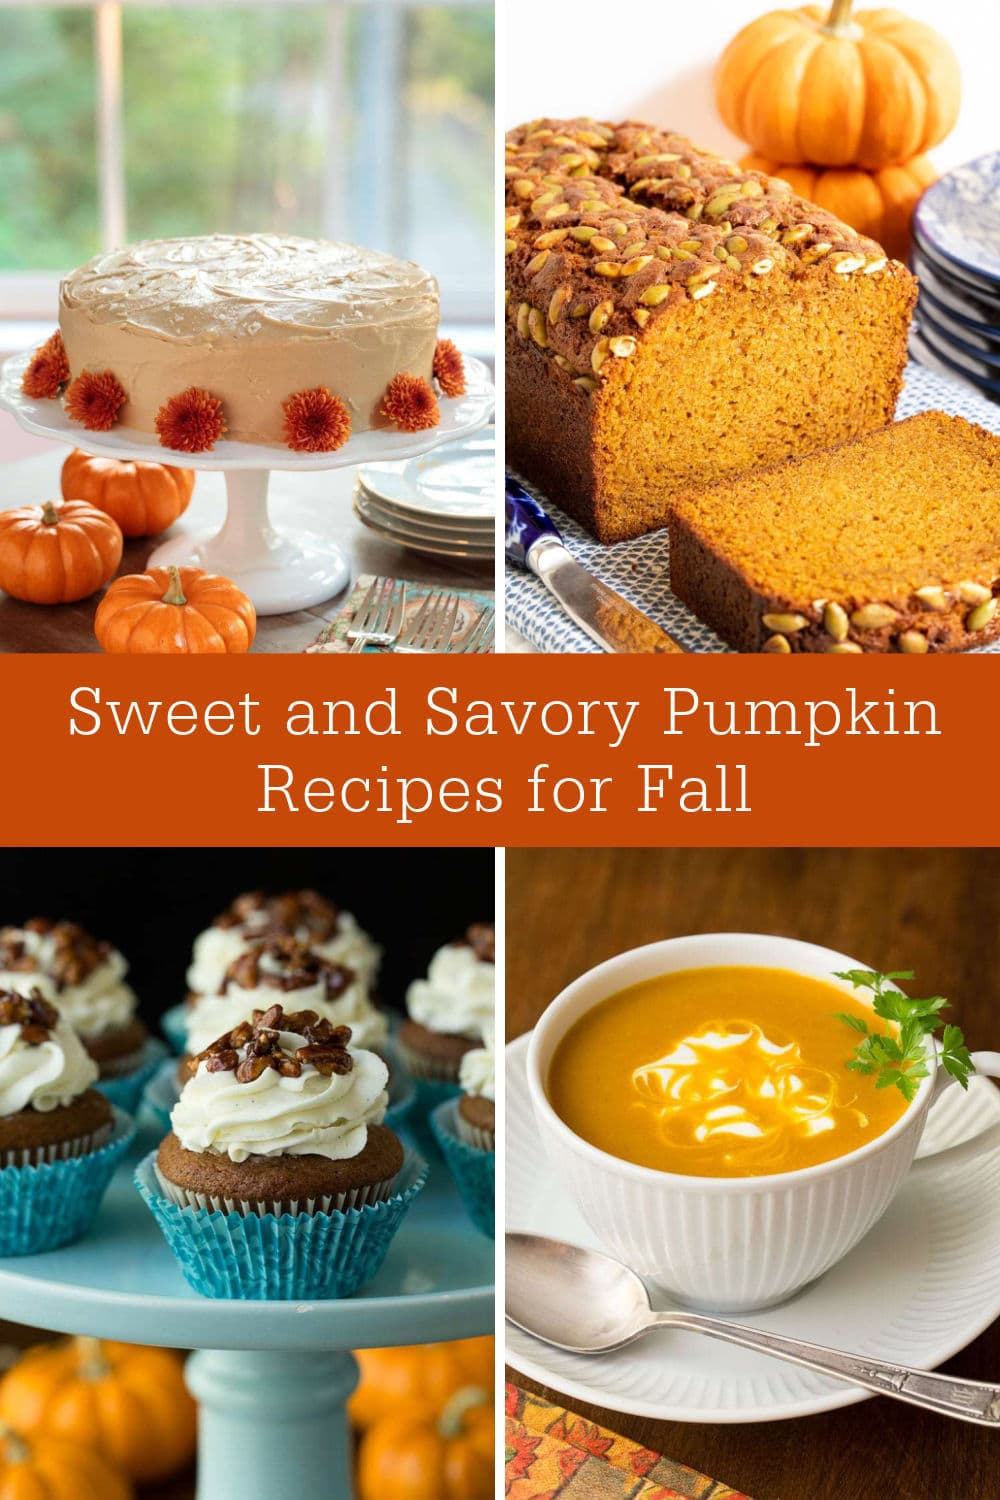 Bring on the Pumpkin! Sweet and Savory Recipes to Celebrate the Season